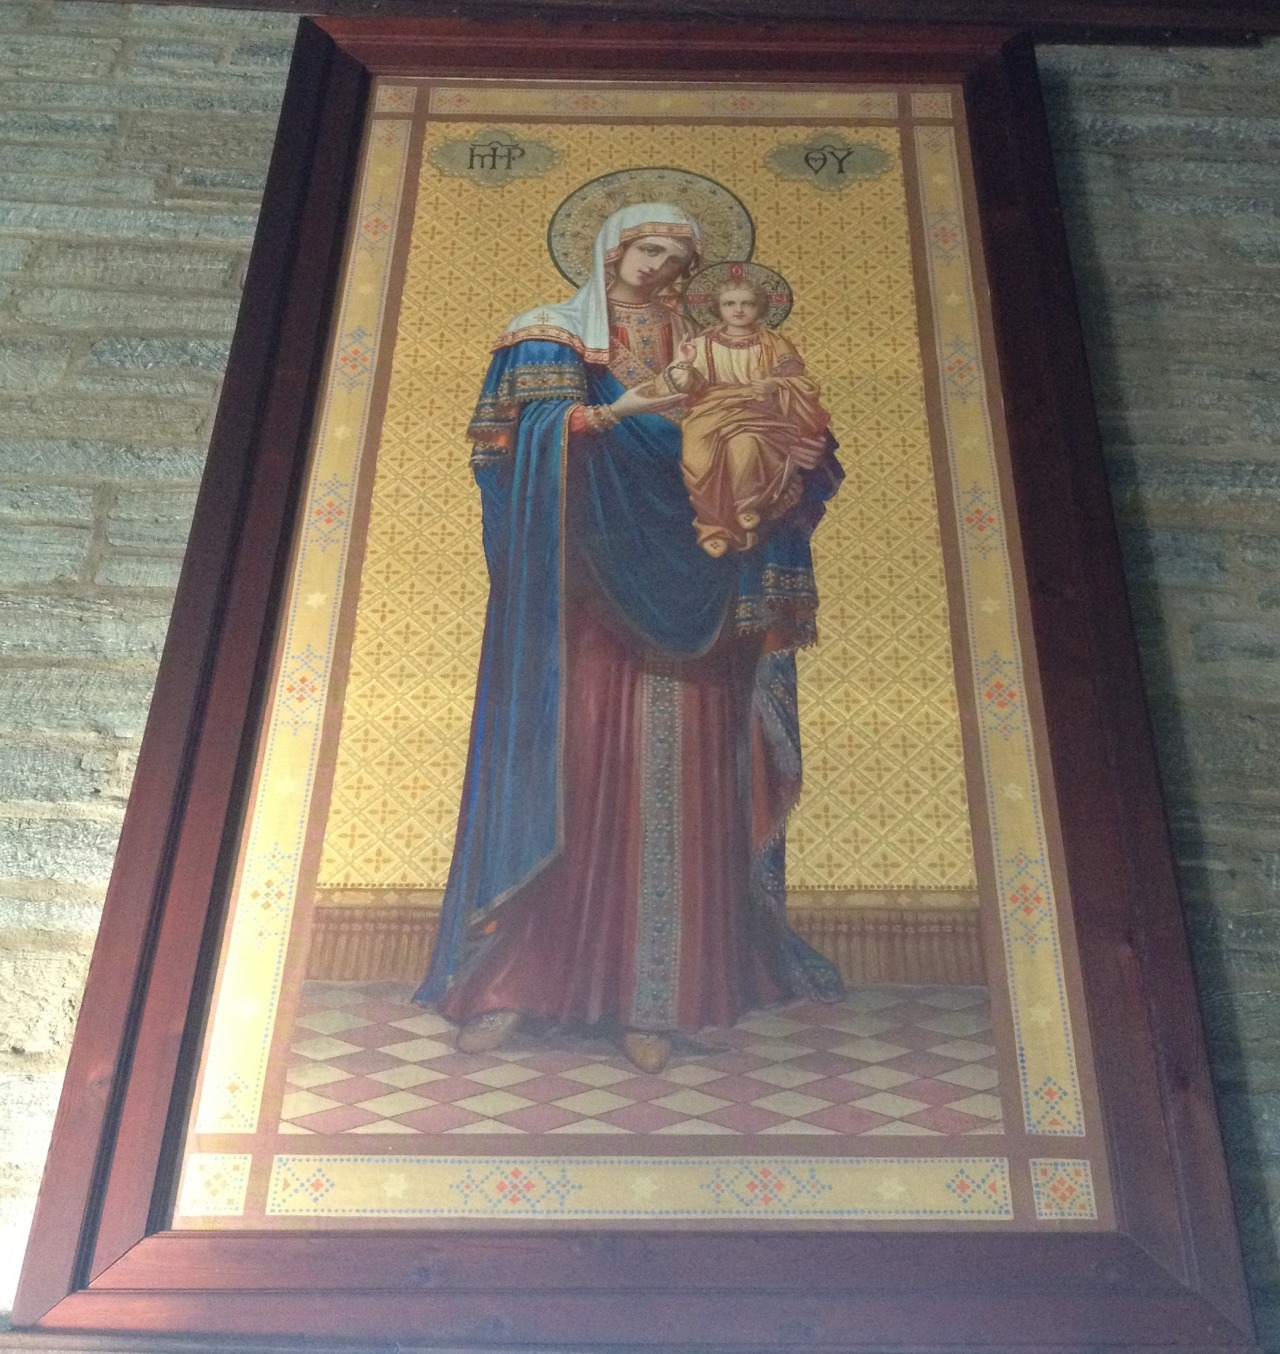 Icon of the Theotokos and Child at St. Josaphat's Ukrainian Catholic Monastery